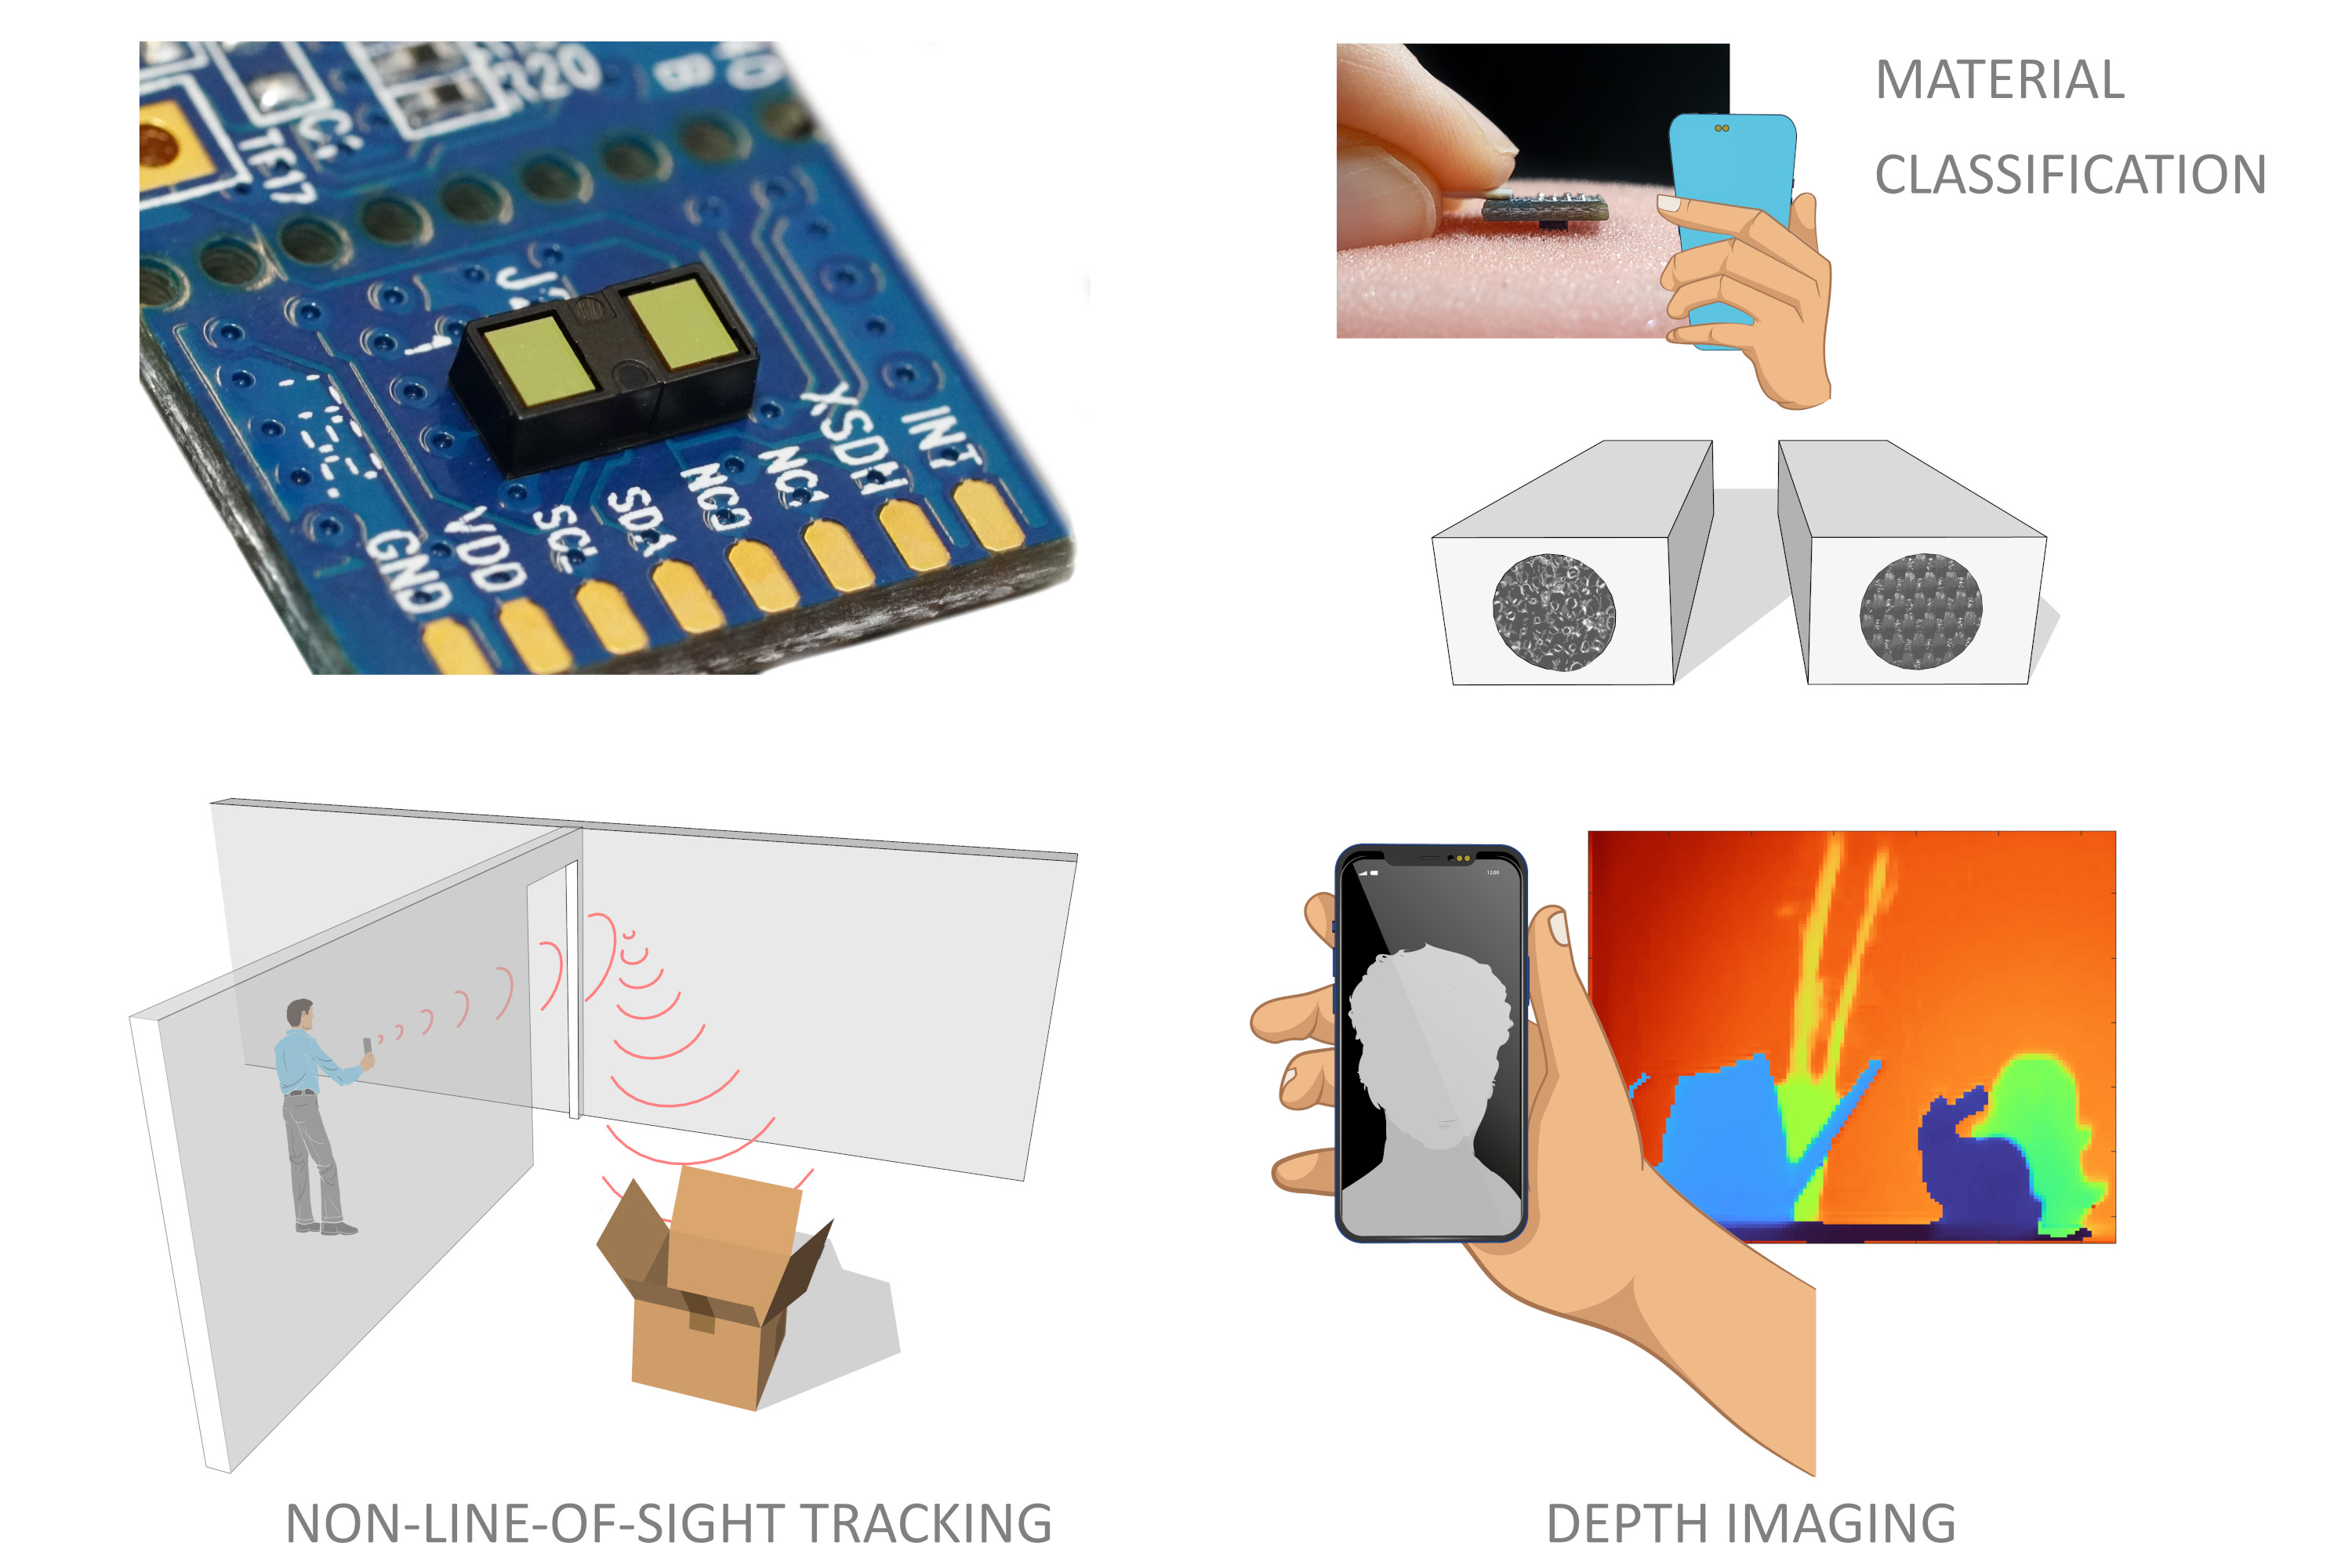 Low-Cost SPAD Sensing for Non-Line-Of-Sight Tracking, Material Classification and Depth Imaging